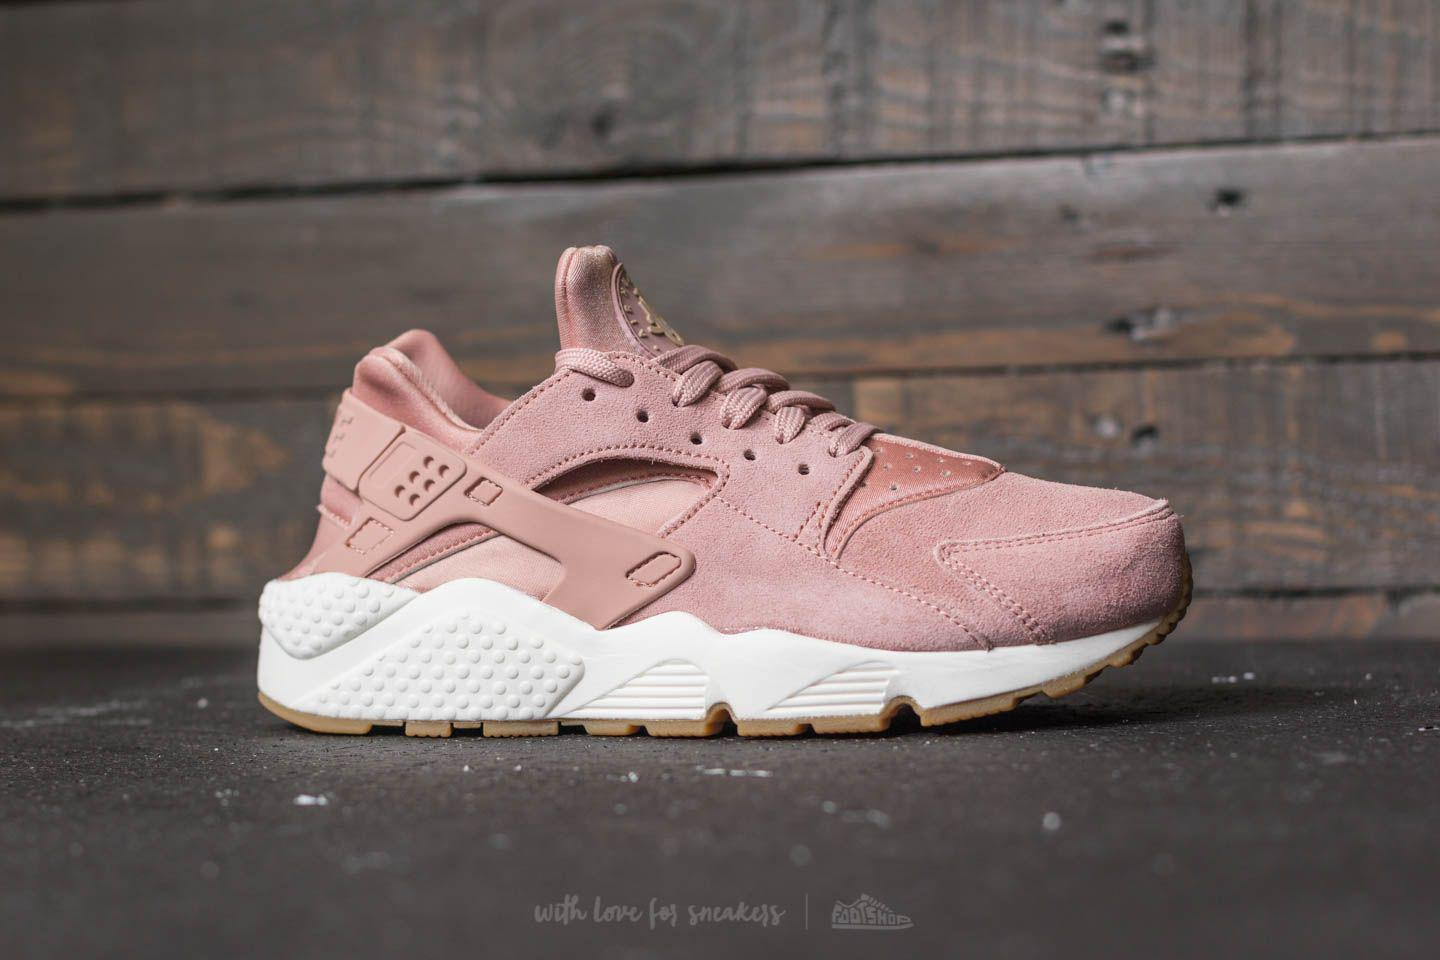 Lyst - Nike Wmns Air Huarache Run Sd Particle Pink  Mushroom-sail in ... 4f2e59a62117